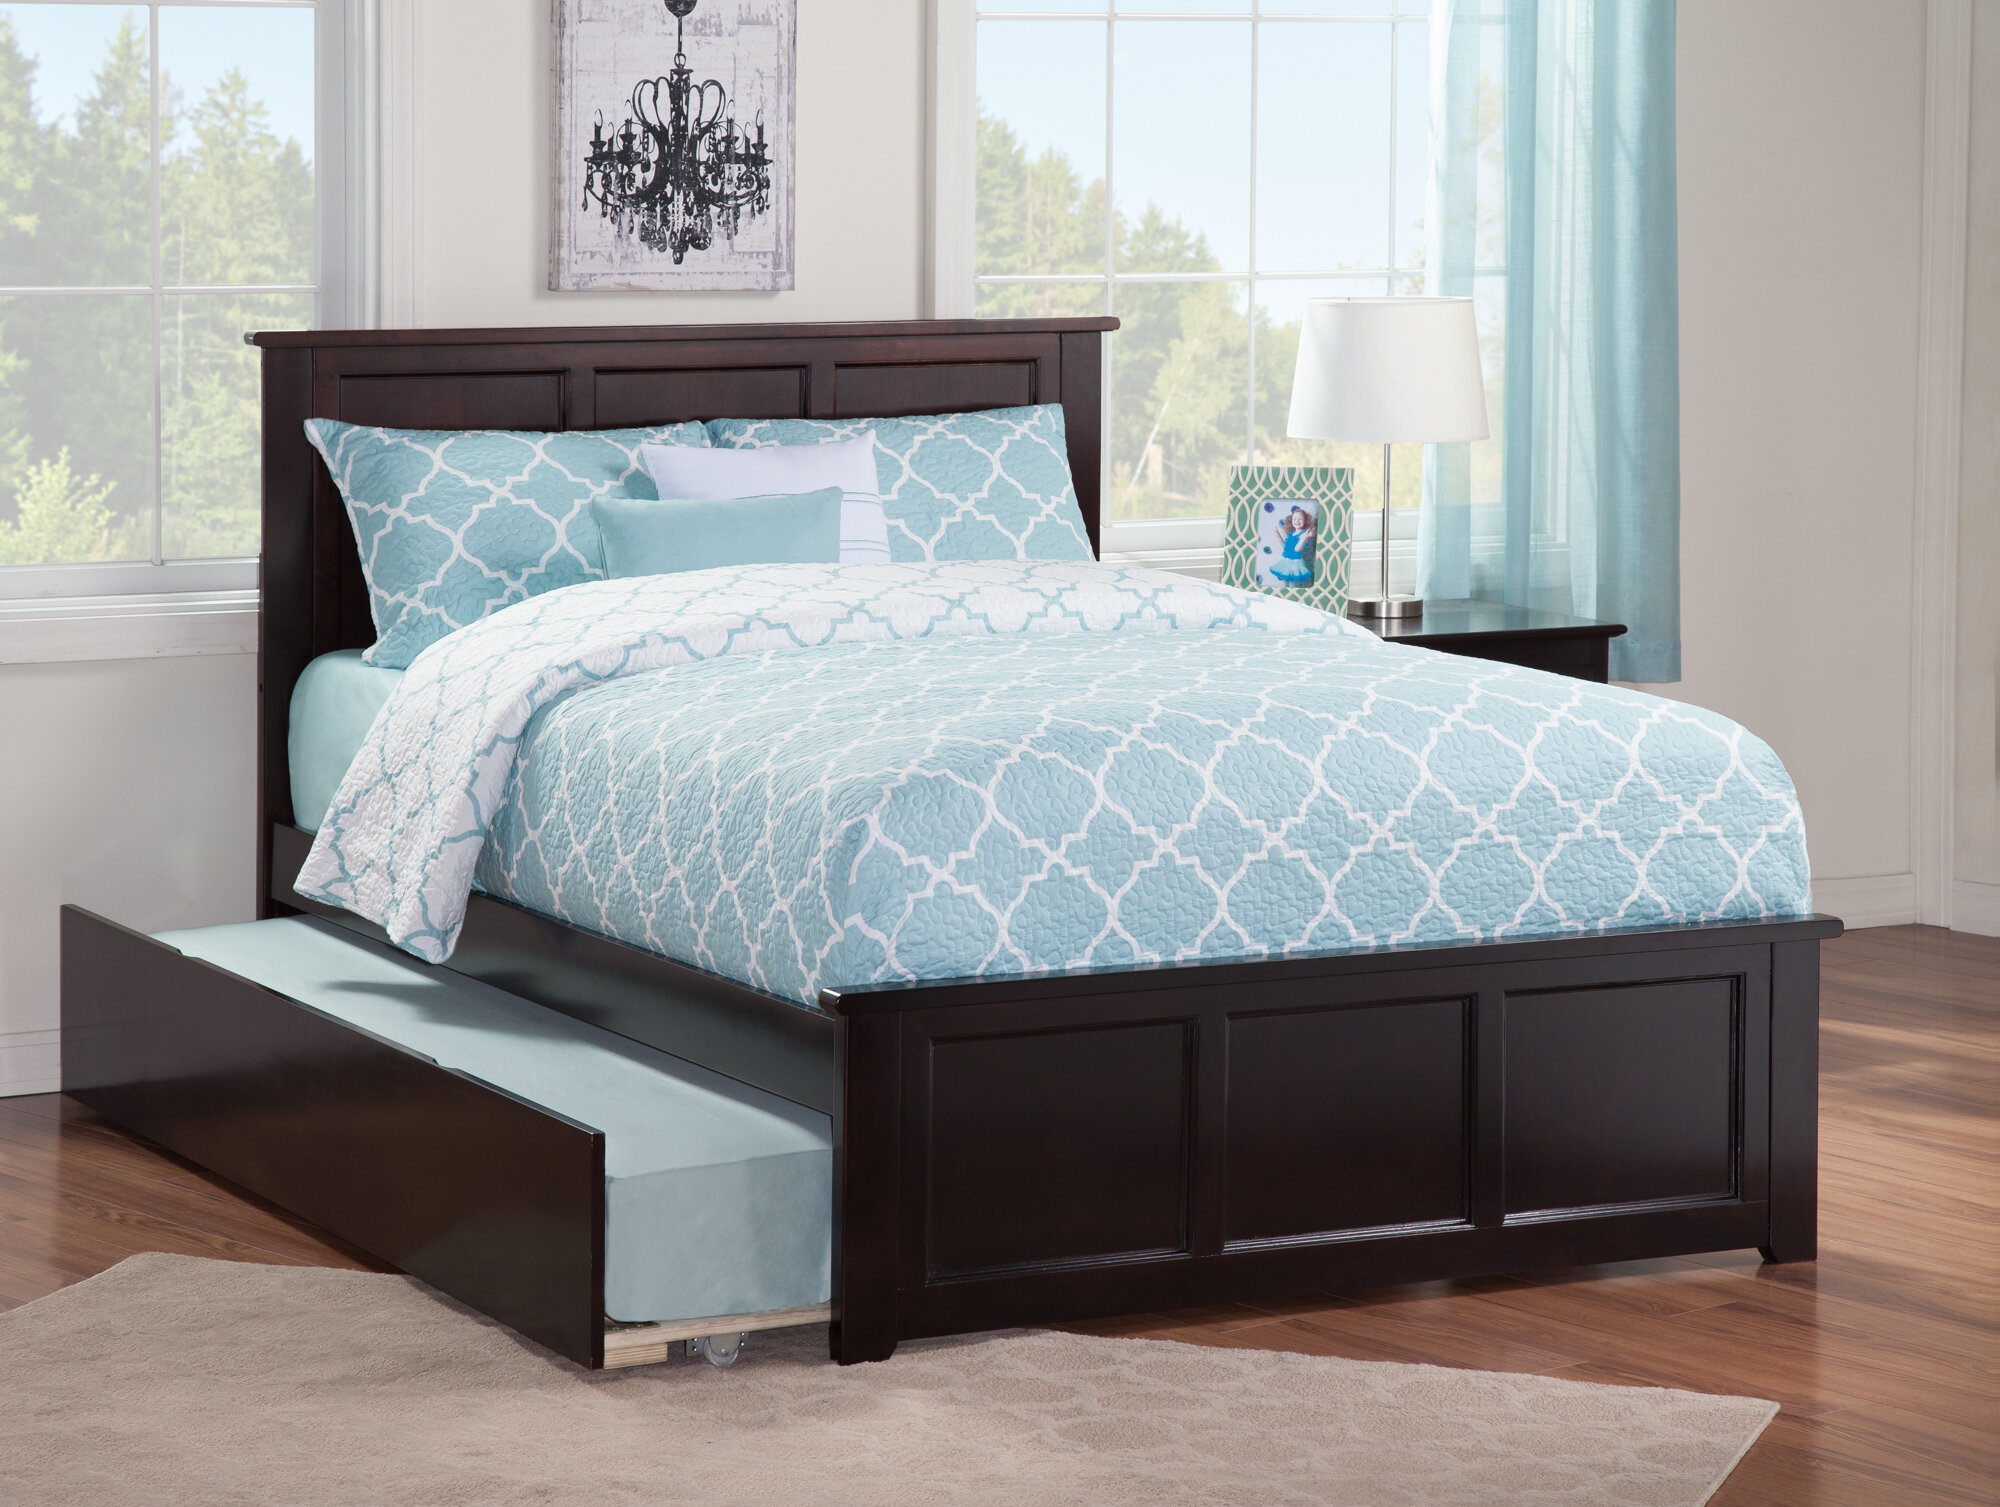 6e683b6f326fb Full Bed With Trundle